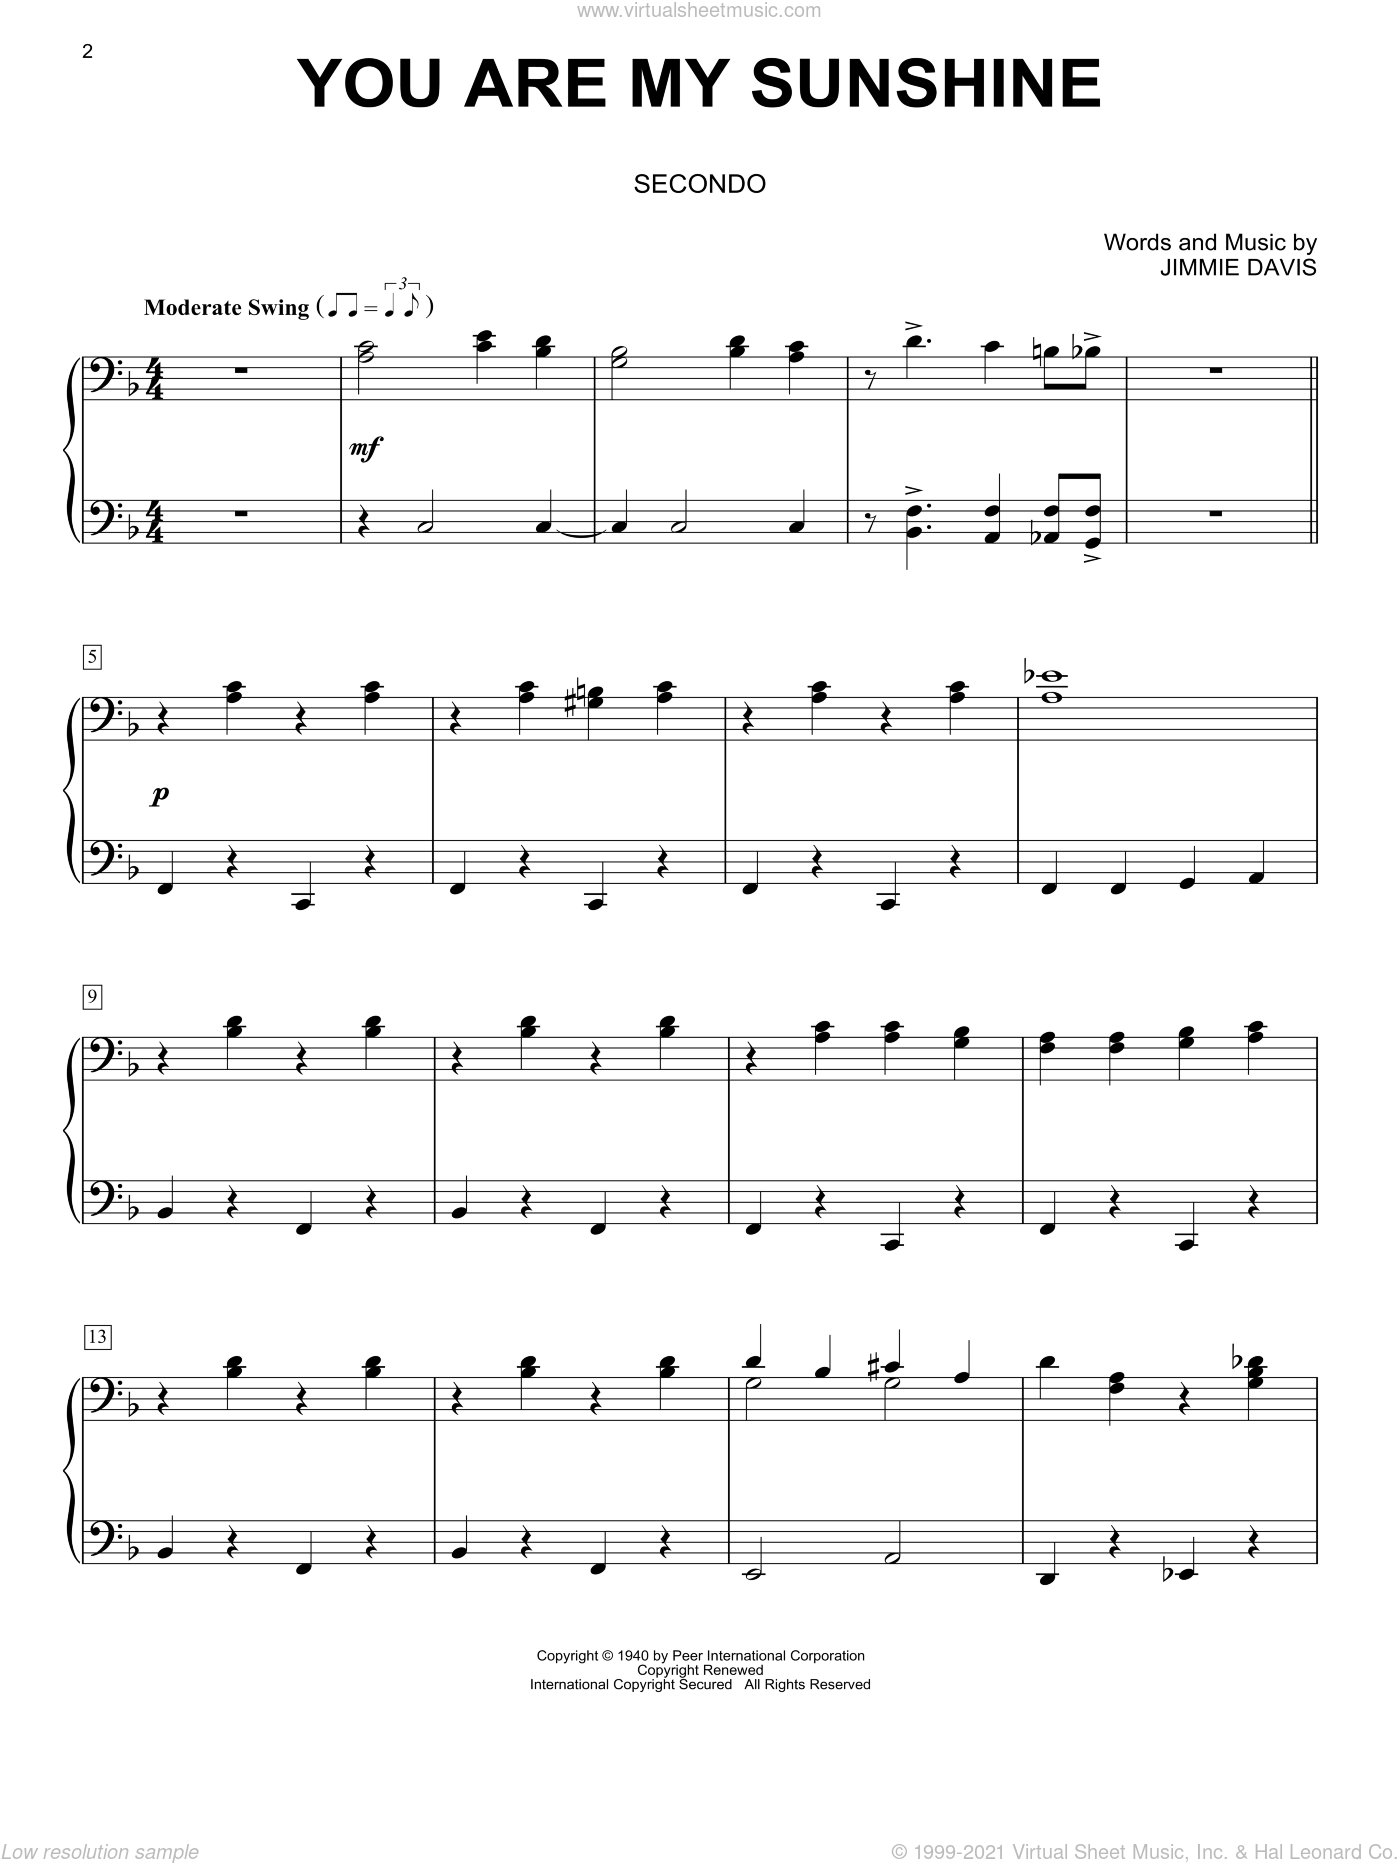 You Are My Sunshine sheet music for piano four hands by Jimmie Davis, intermediate skill level